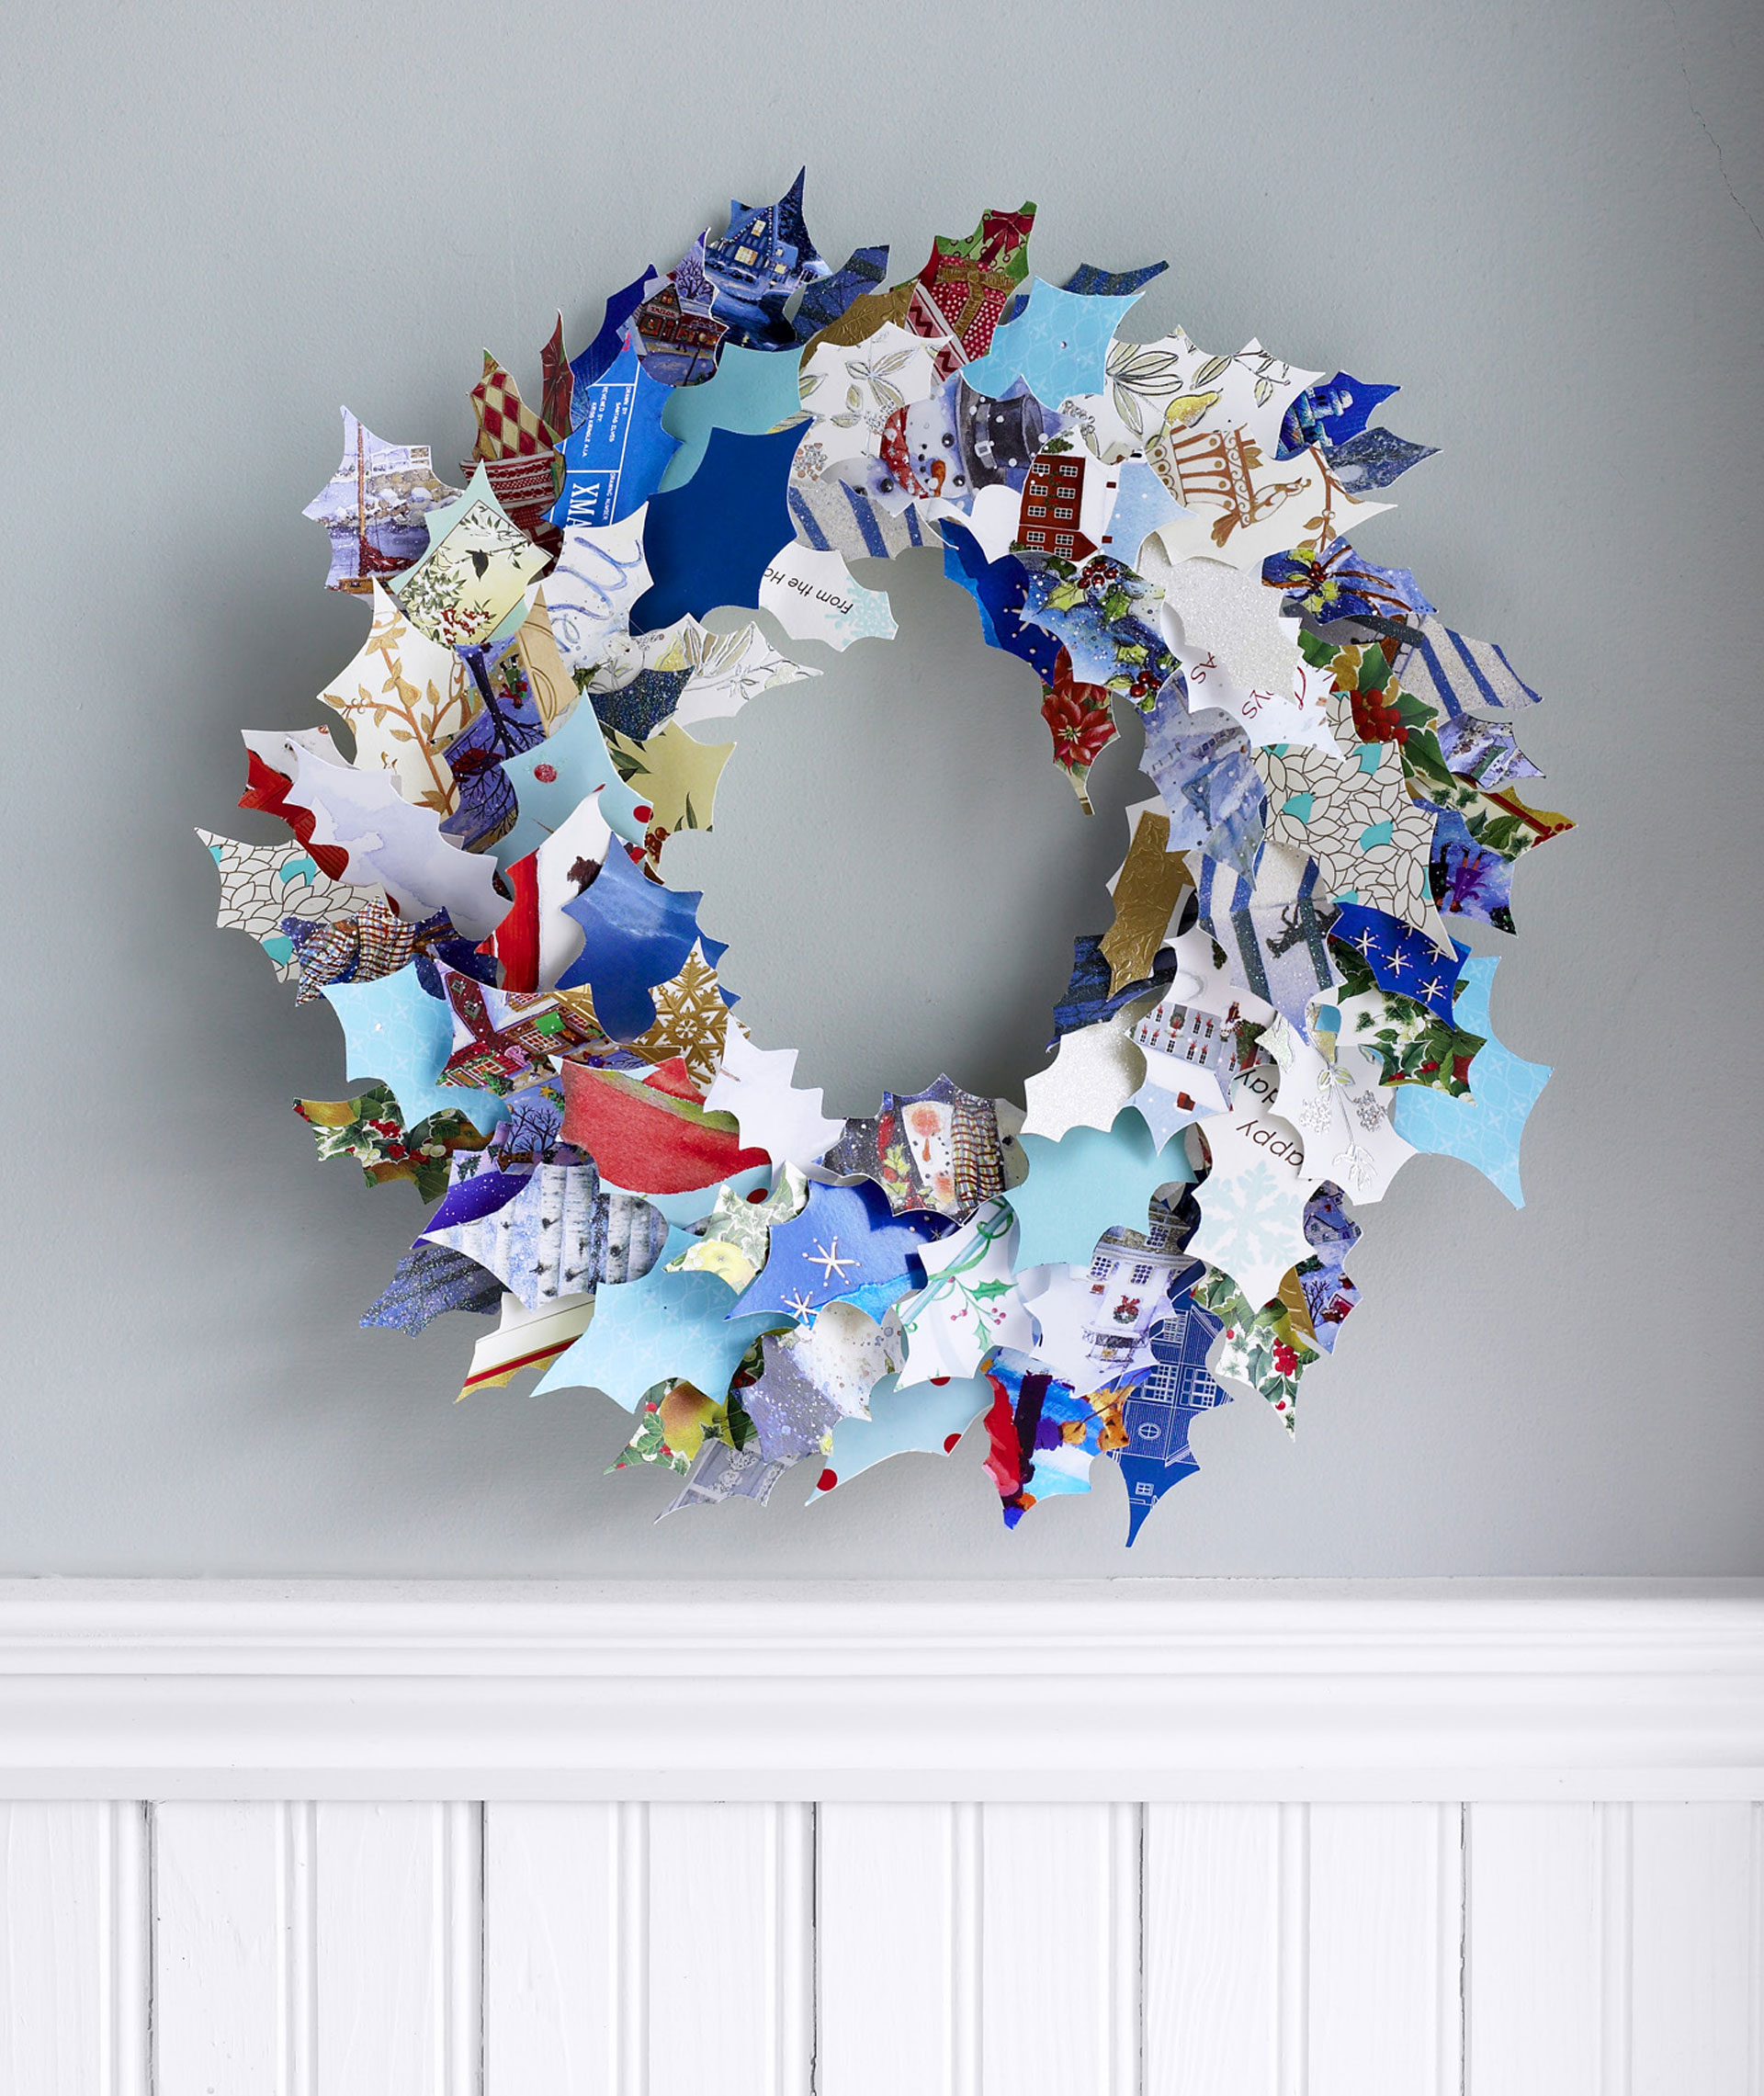 How to make a christmas decor out of recycled materials - How To Make A Christmas Decor Out Of Recycled Materials 13